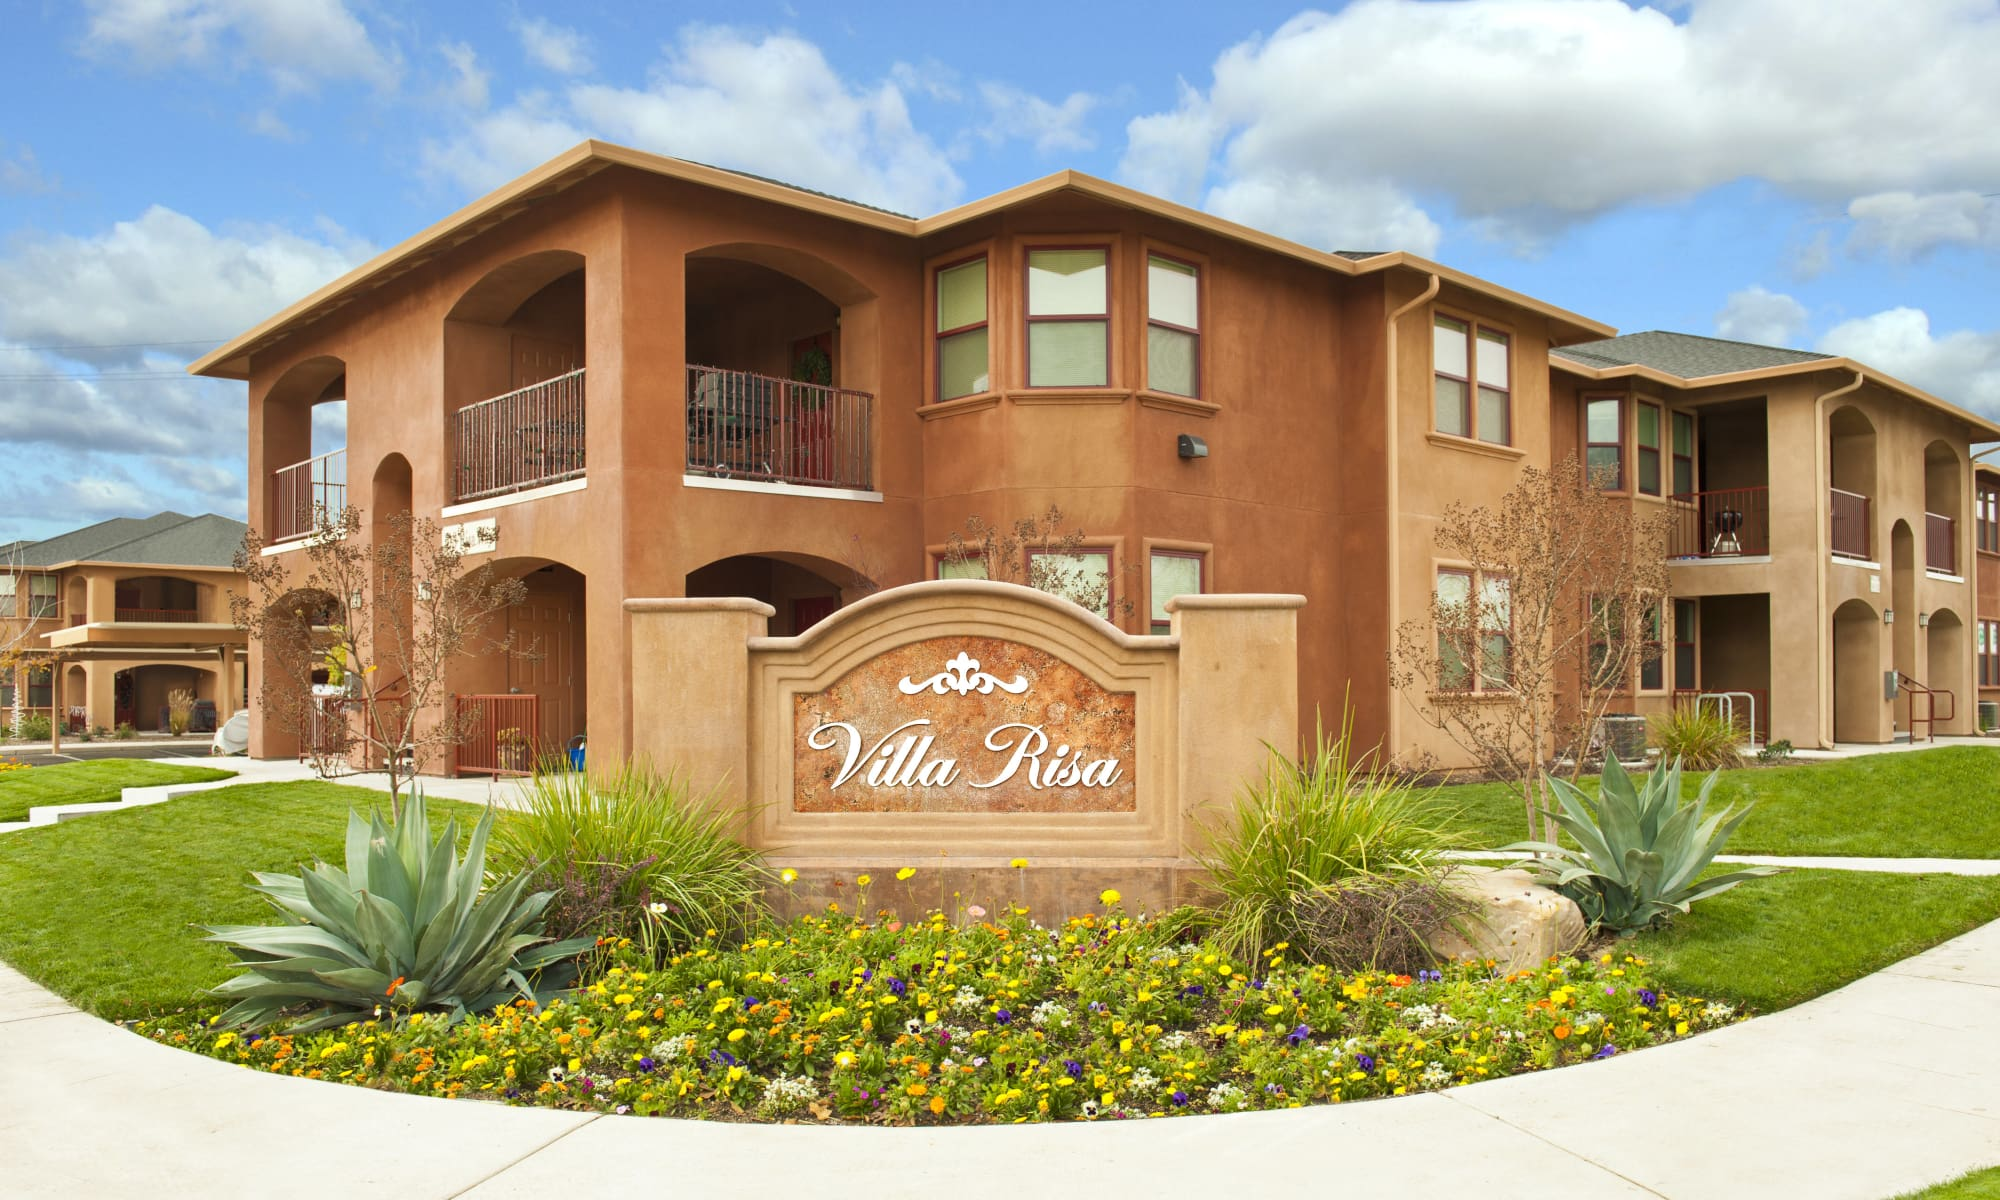 Villa Risa Apartments in Chico, California